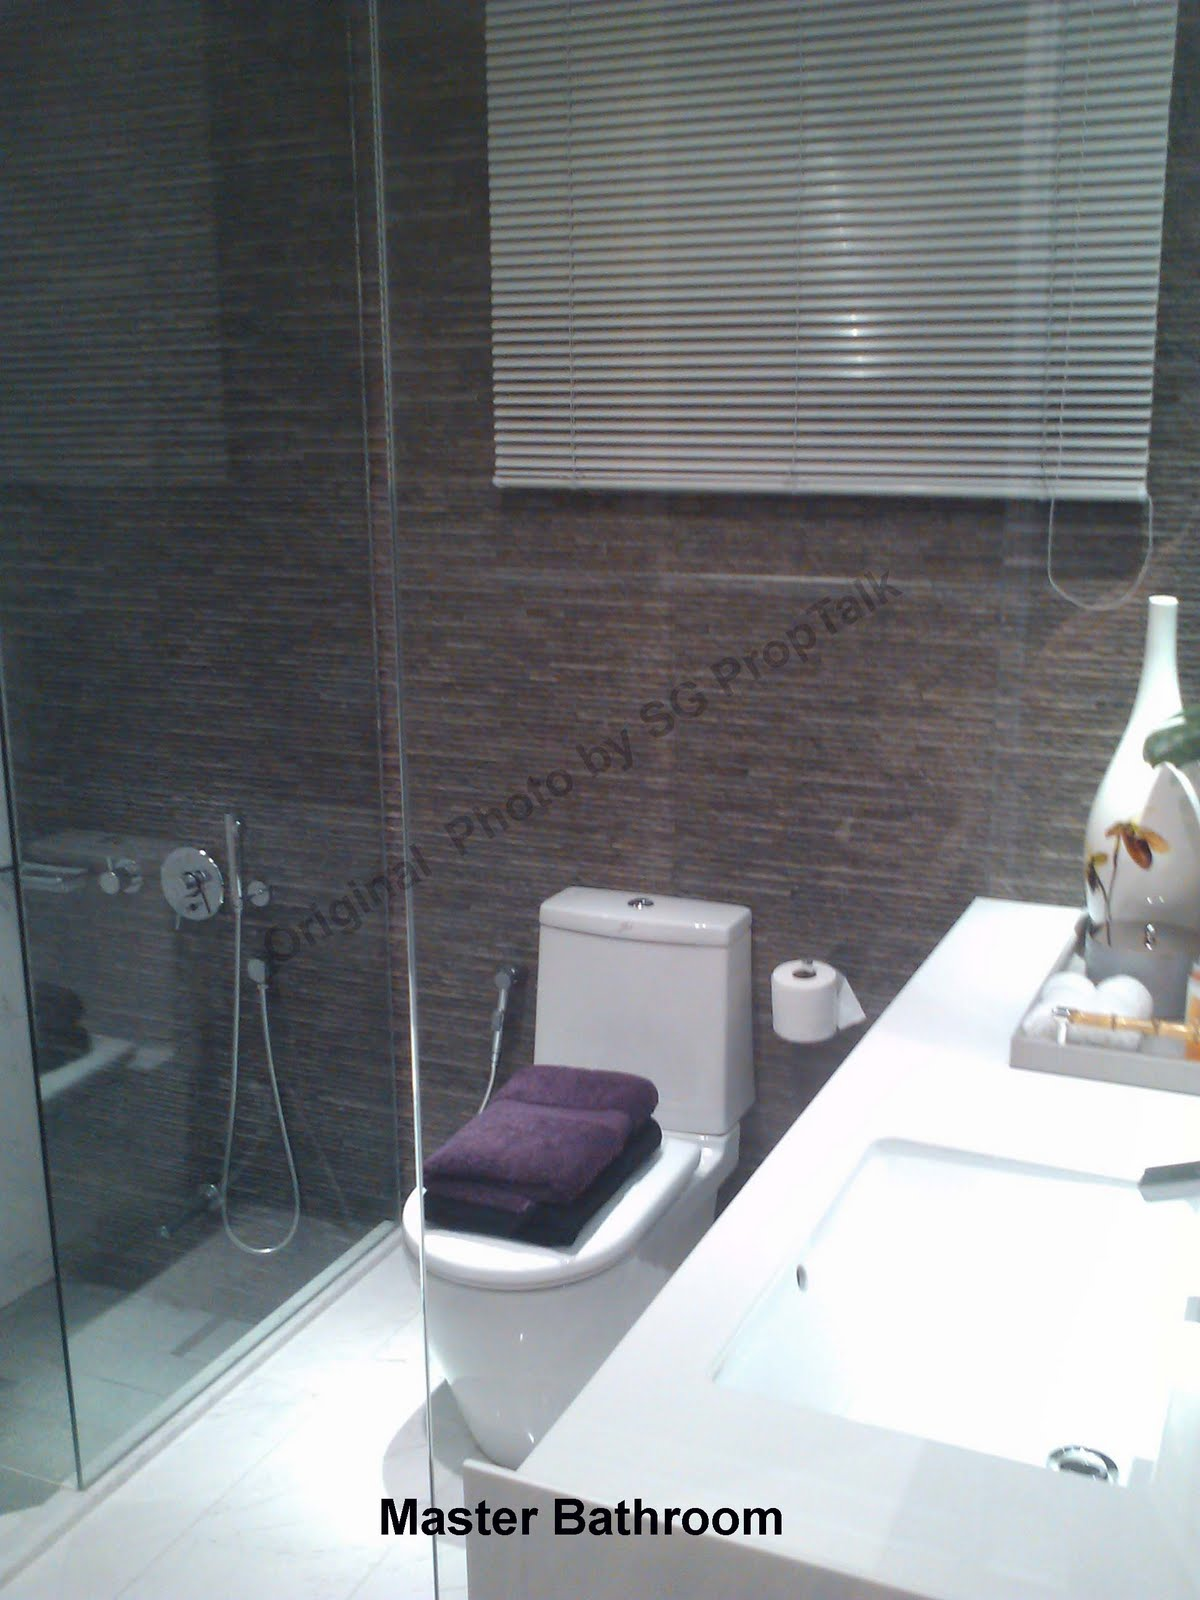 Normal Bathroom Designs Pricing wise, the average